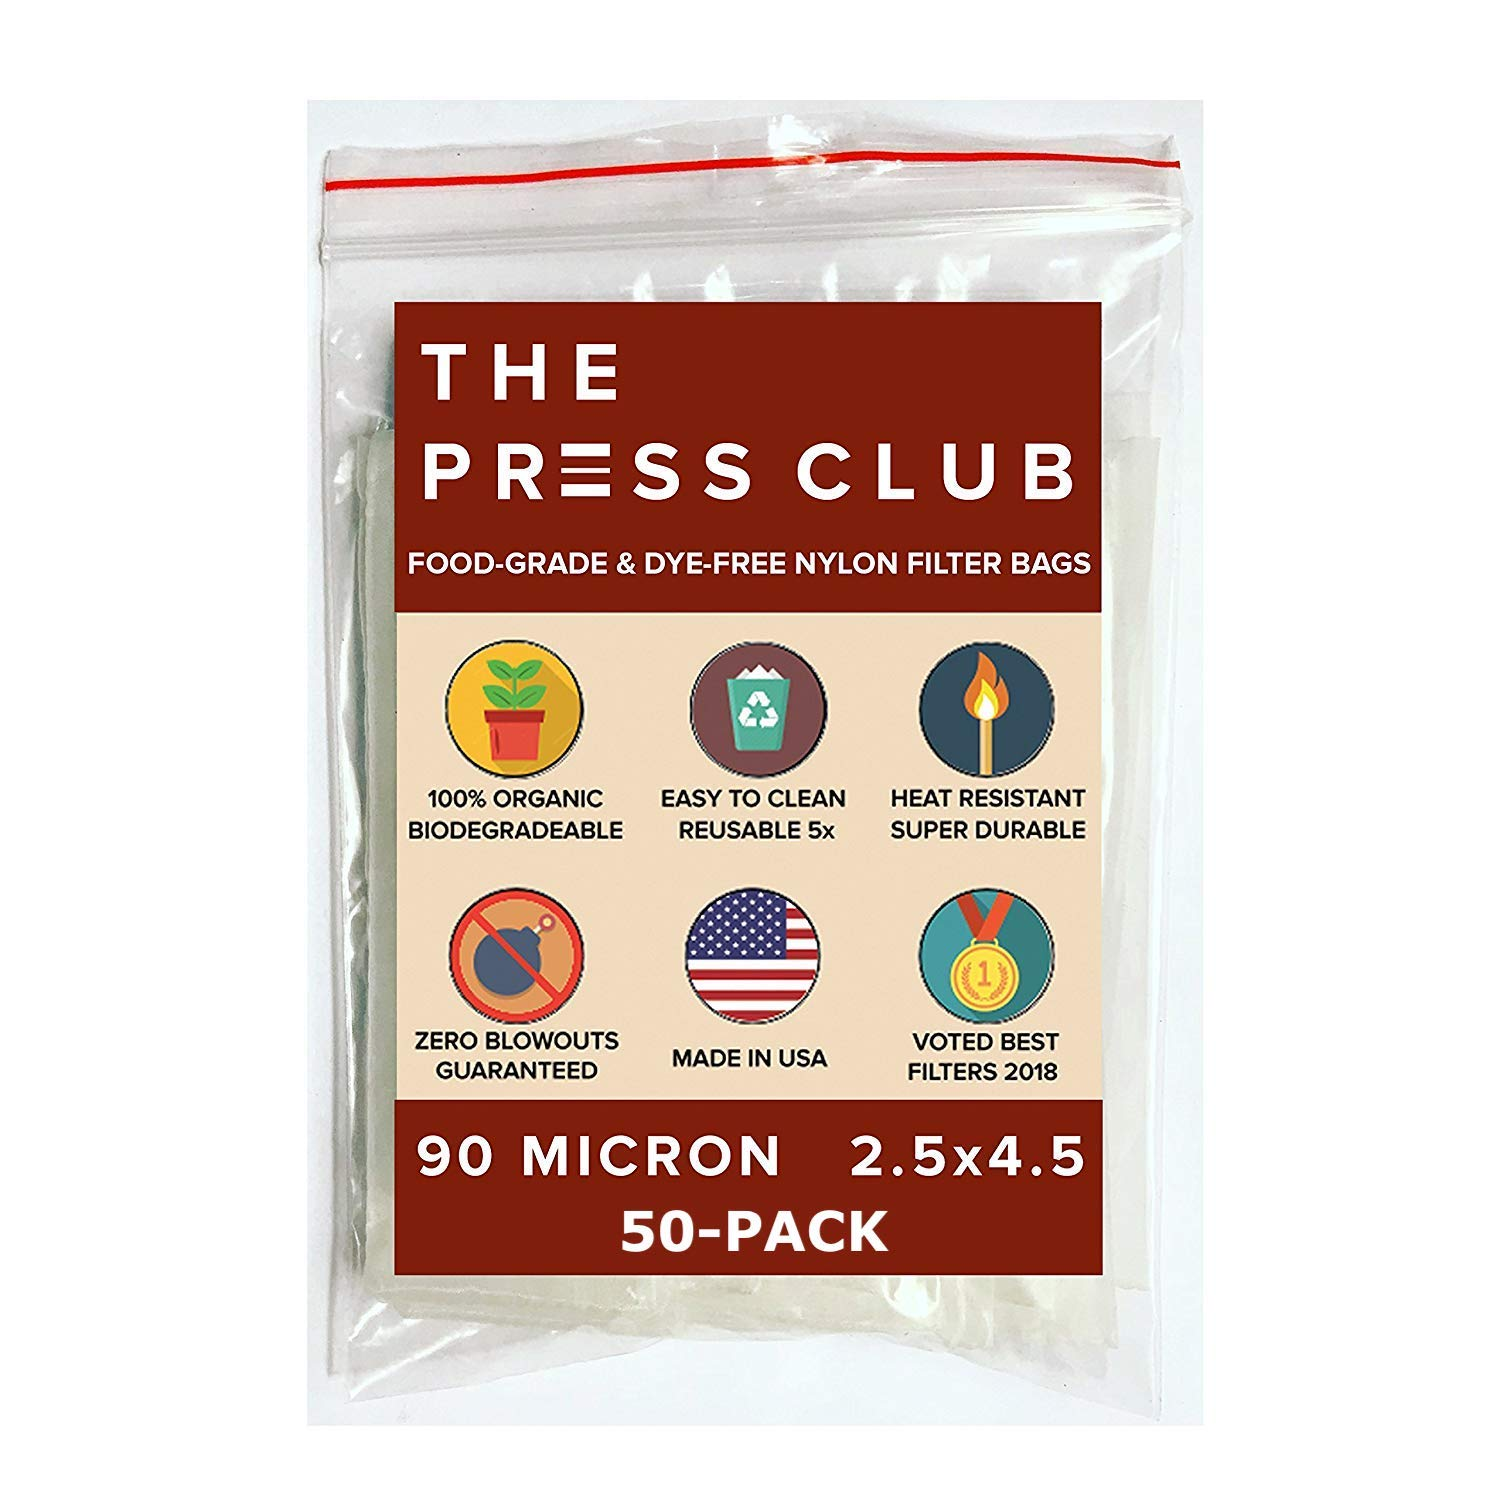 90 Micron | Premium Nylon Rosin Tea Filter Screen Press Bags | 2.5'' x 4.5'' | 50 Pack | Zero Blowout Guarantee | All Micron & Sizes Available